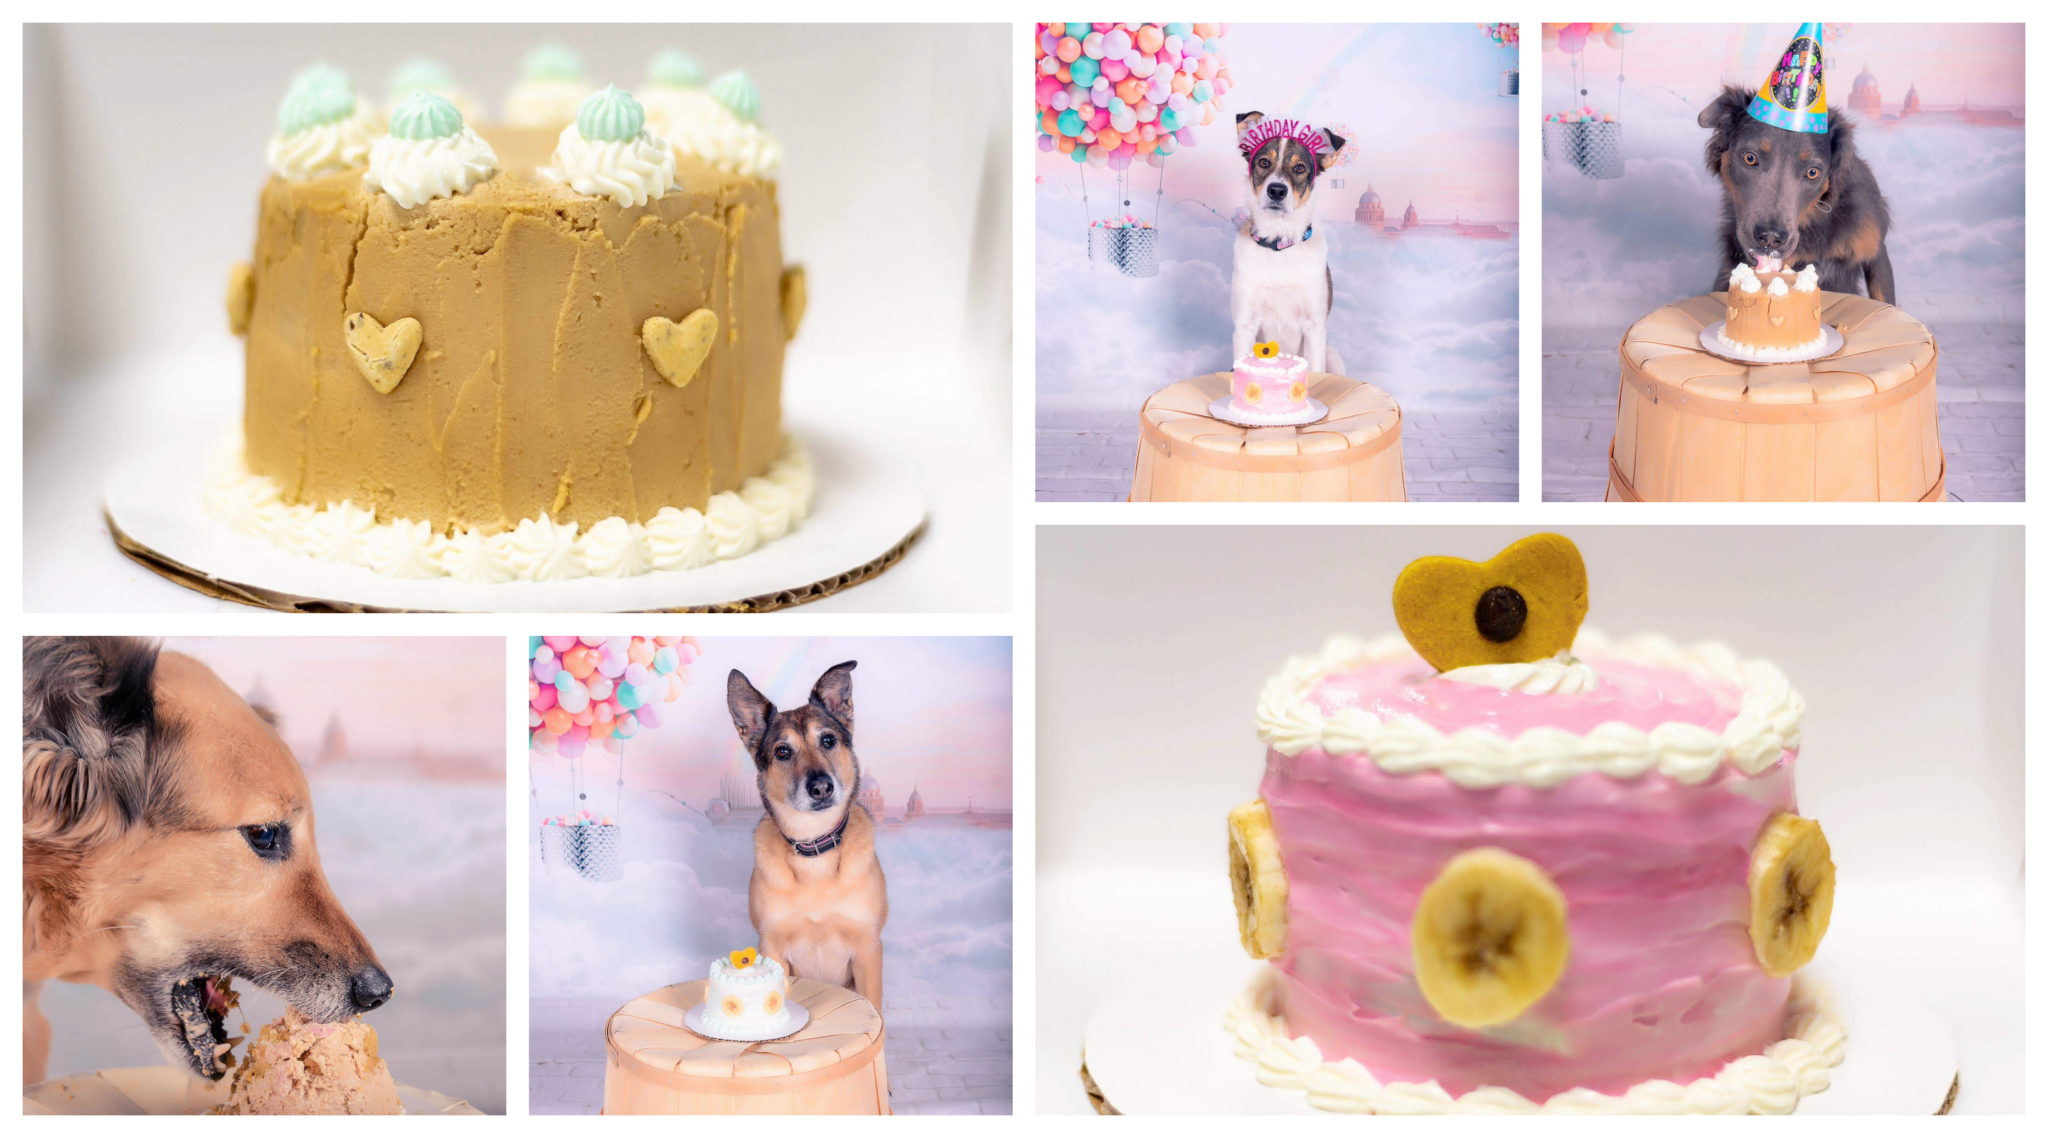 Cake Pawty Calgary Dog Daycare Training Grooming